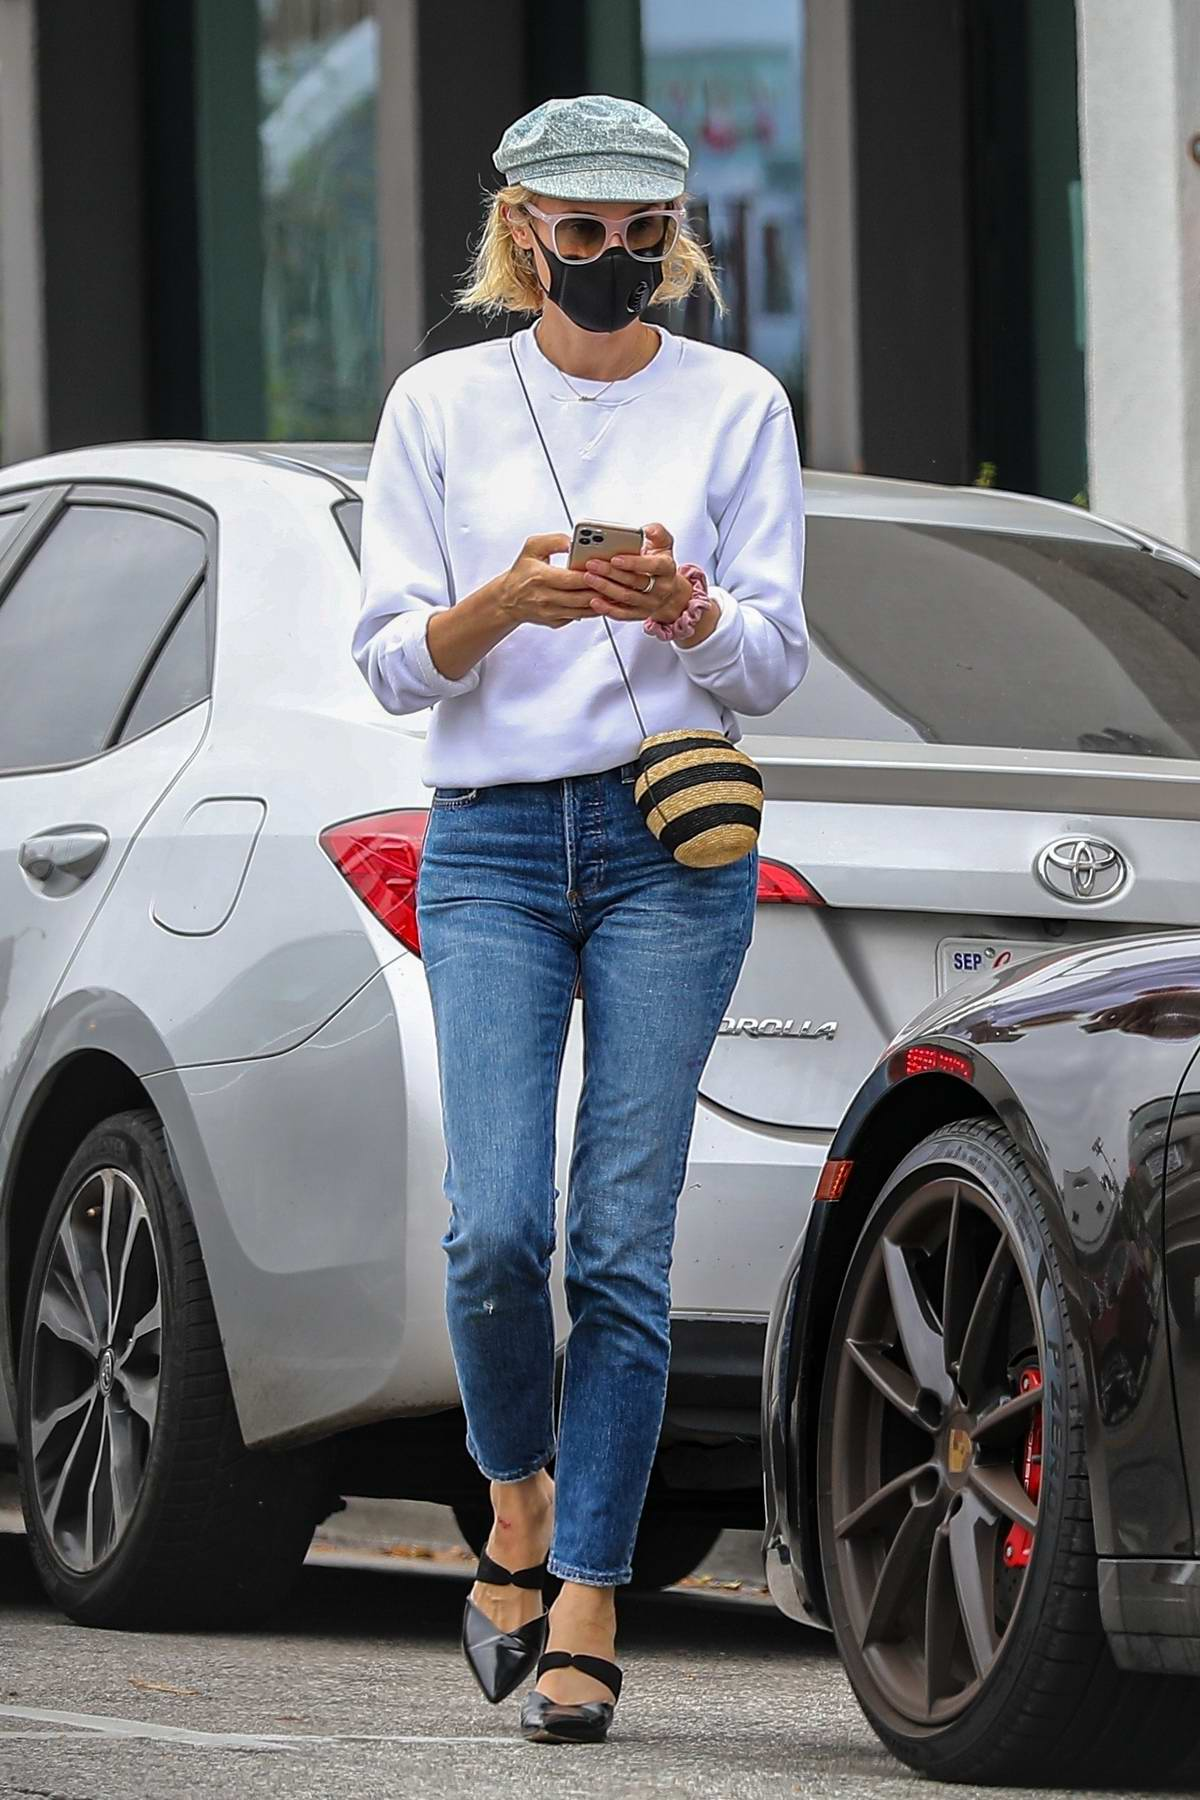 Diane Kruger wears a white sweater and jeans during a shopping trip in Brentwood, California